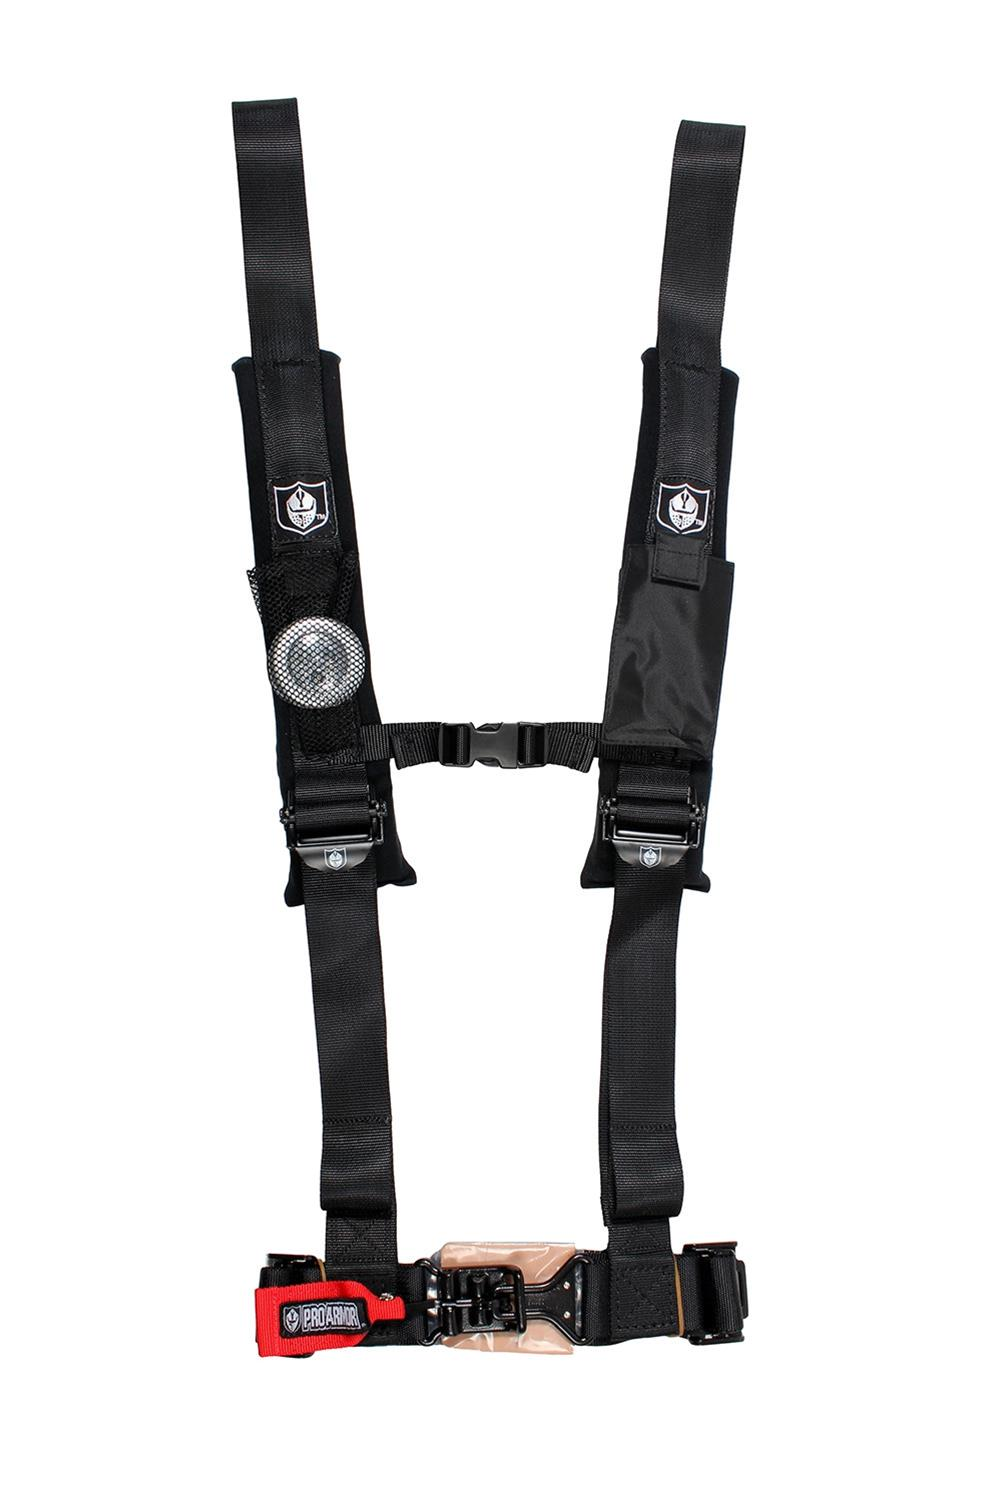 "OFF ROAD SIDE BY SIDE 2/"" SEAT BELT HARNESS RACING 4 POINT LATCH GREY"